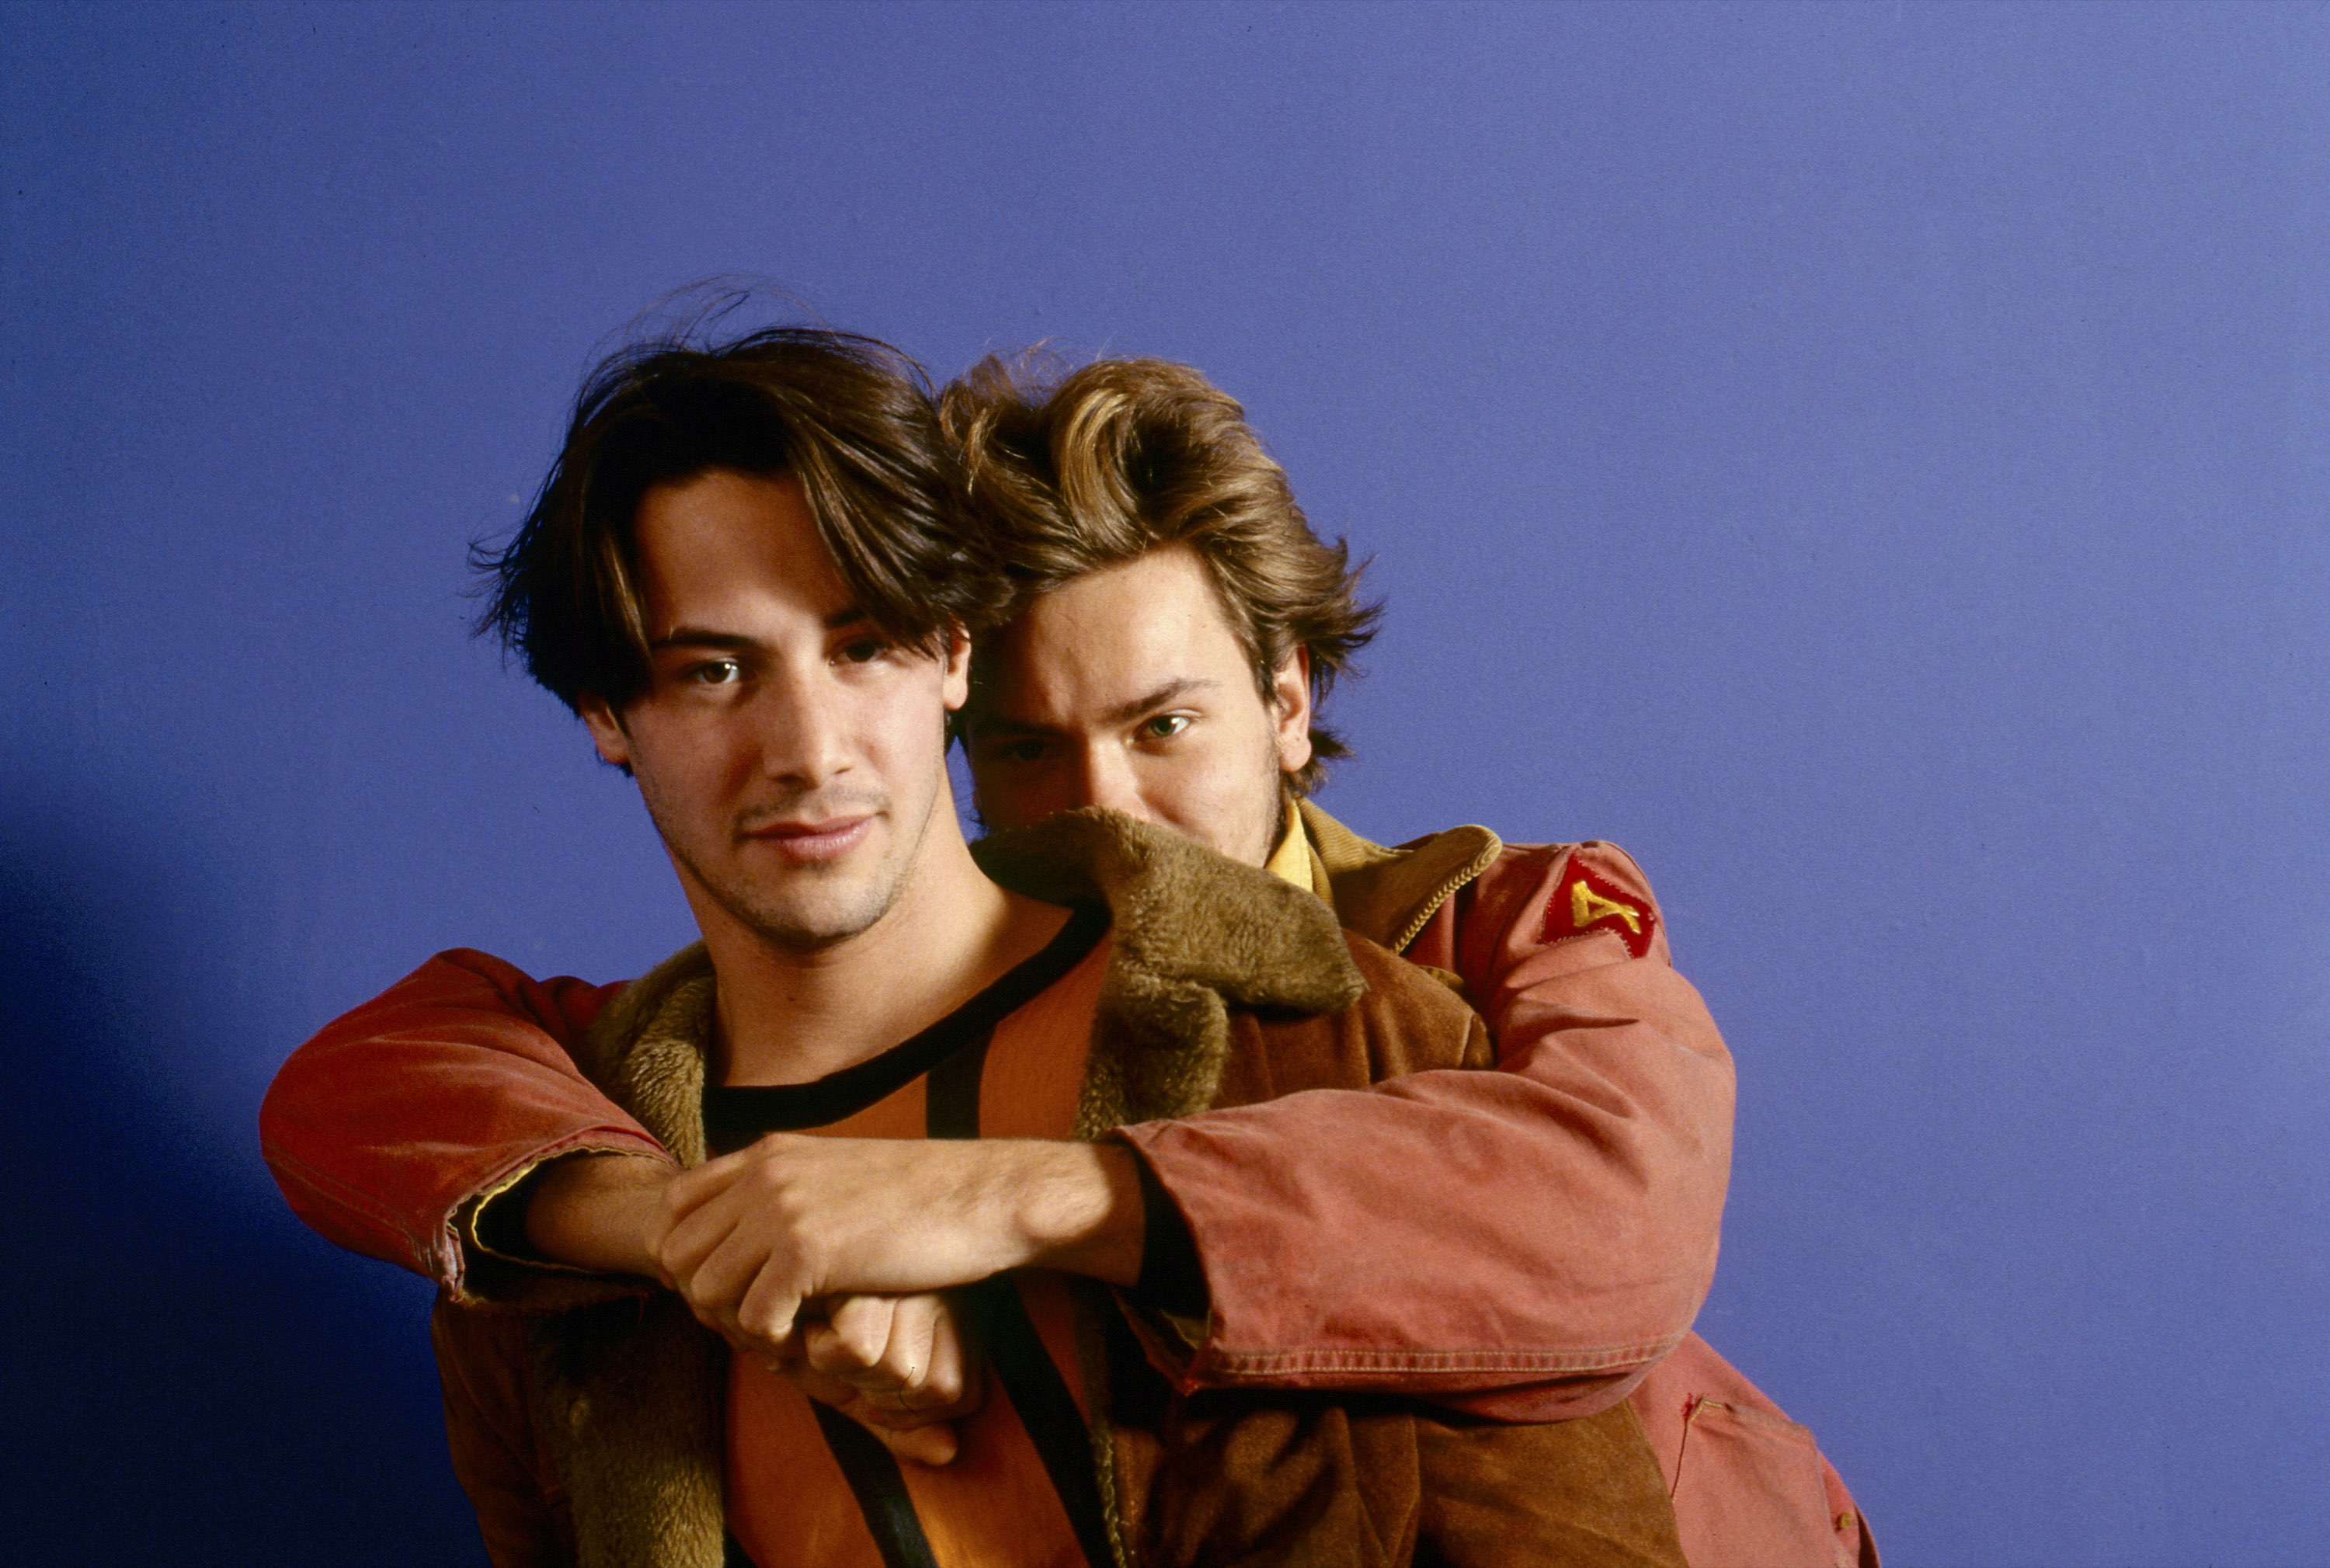 From the archive: My Own Private Idaho